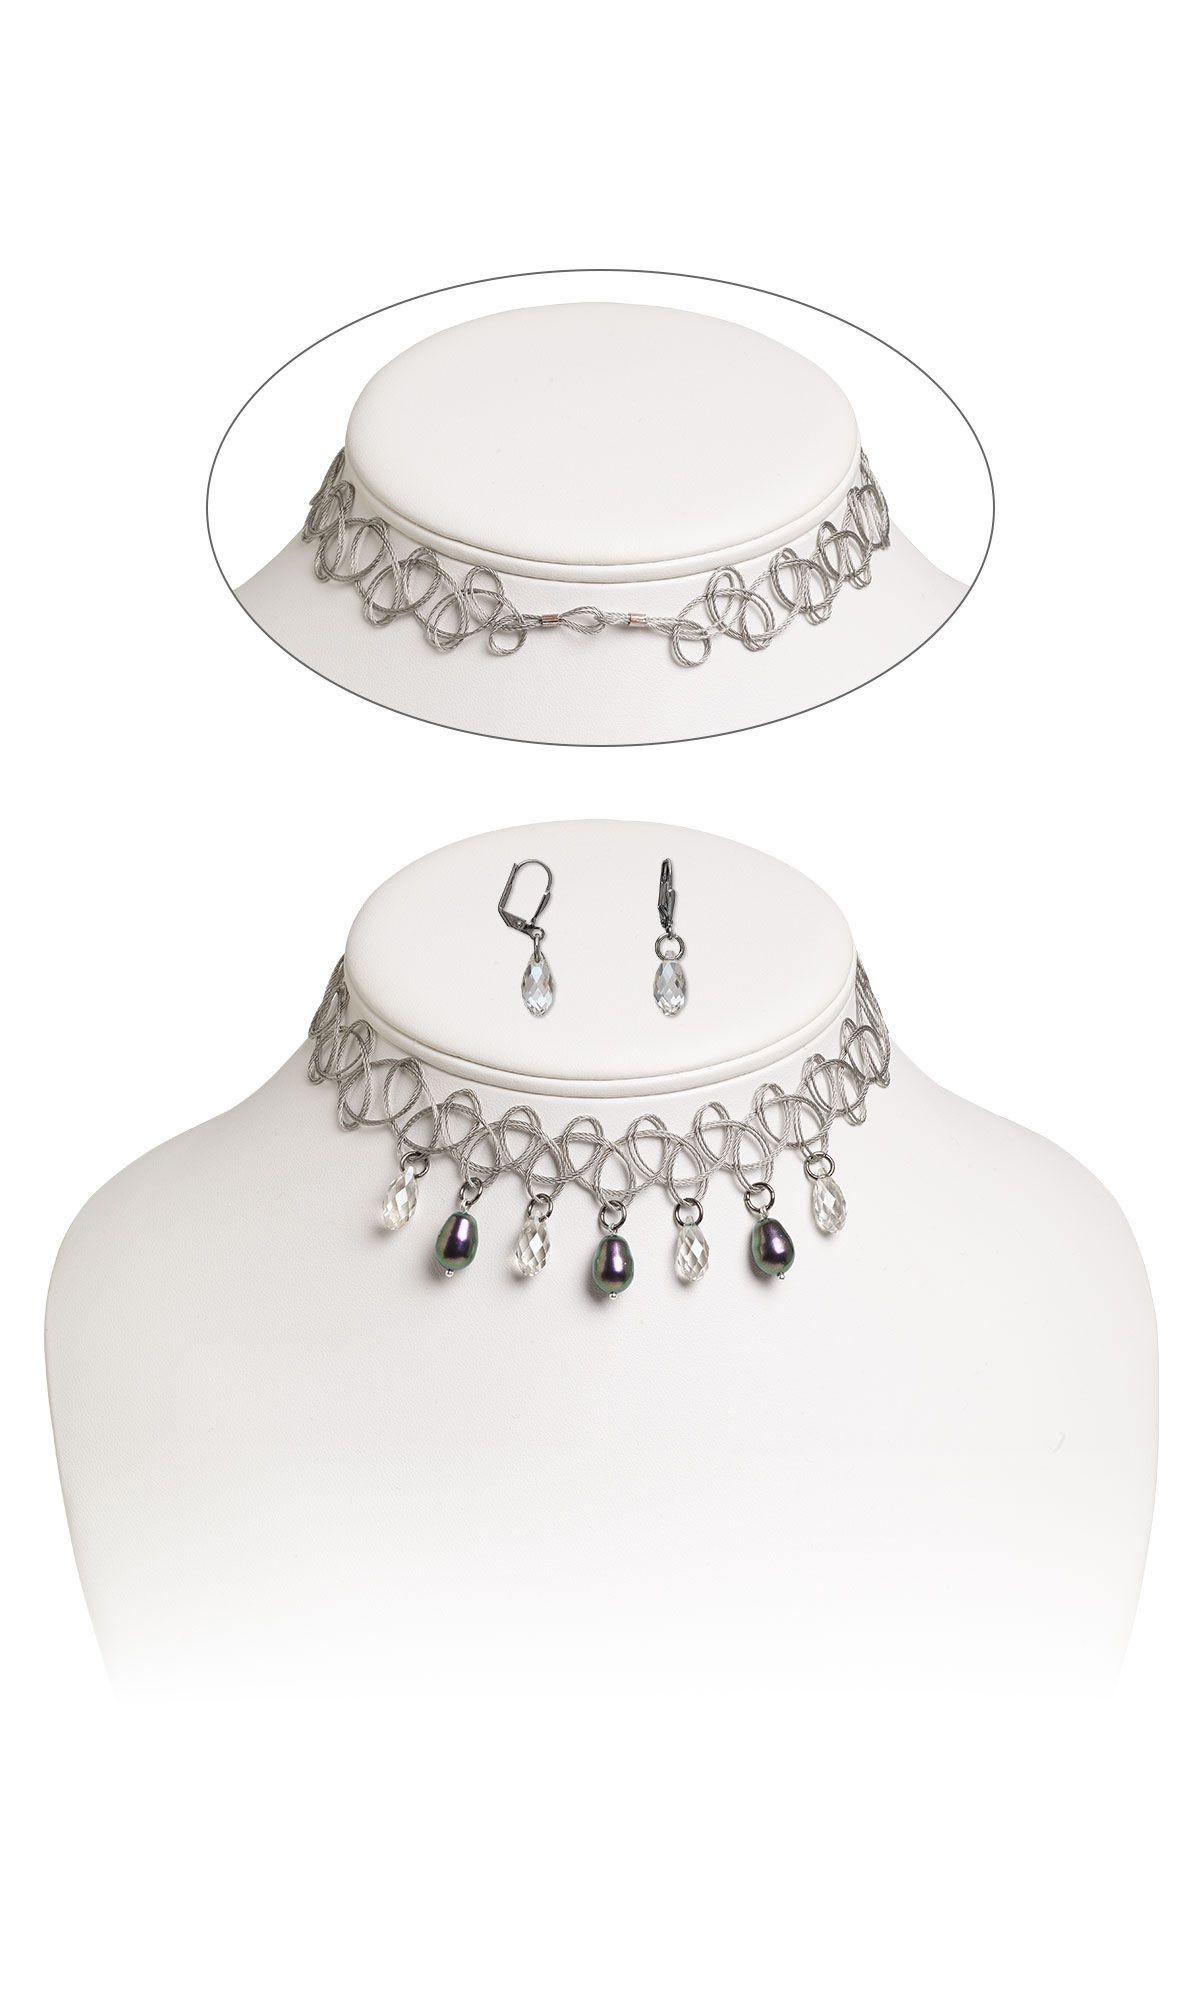 Jewelry Design - Choker-Style Necklace and Earring Set with ...